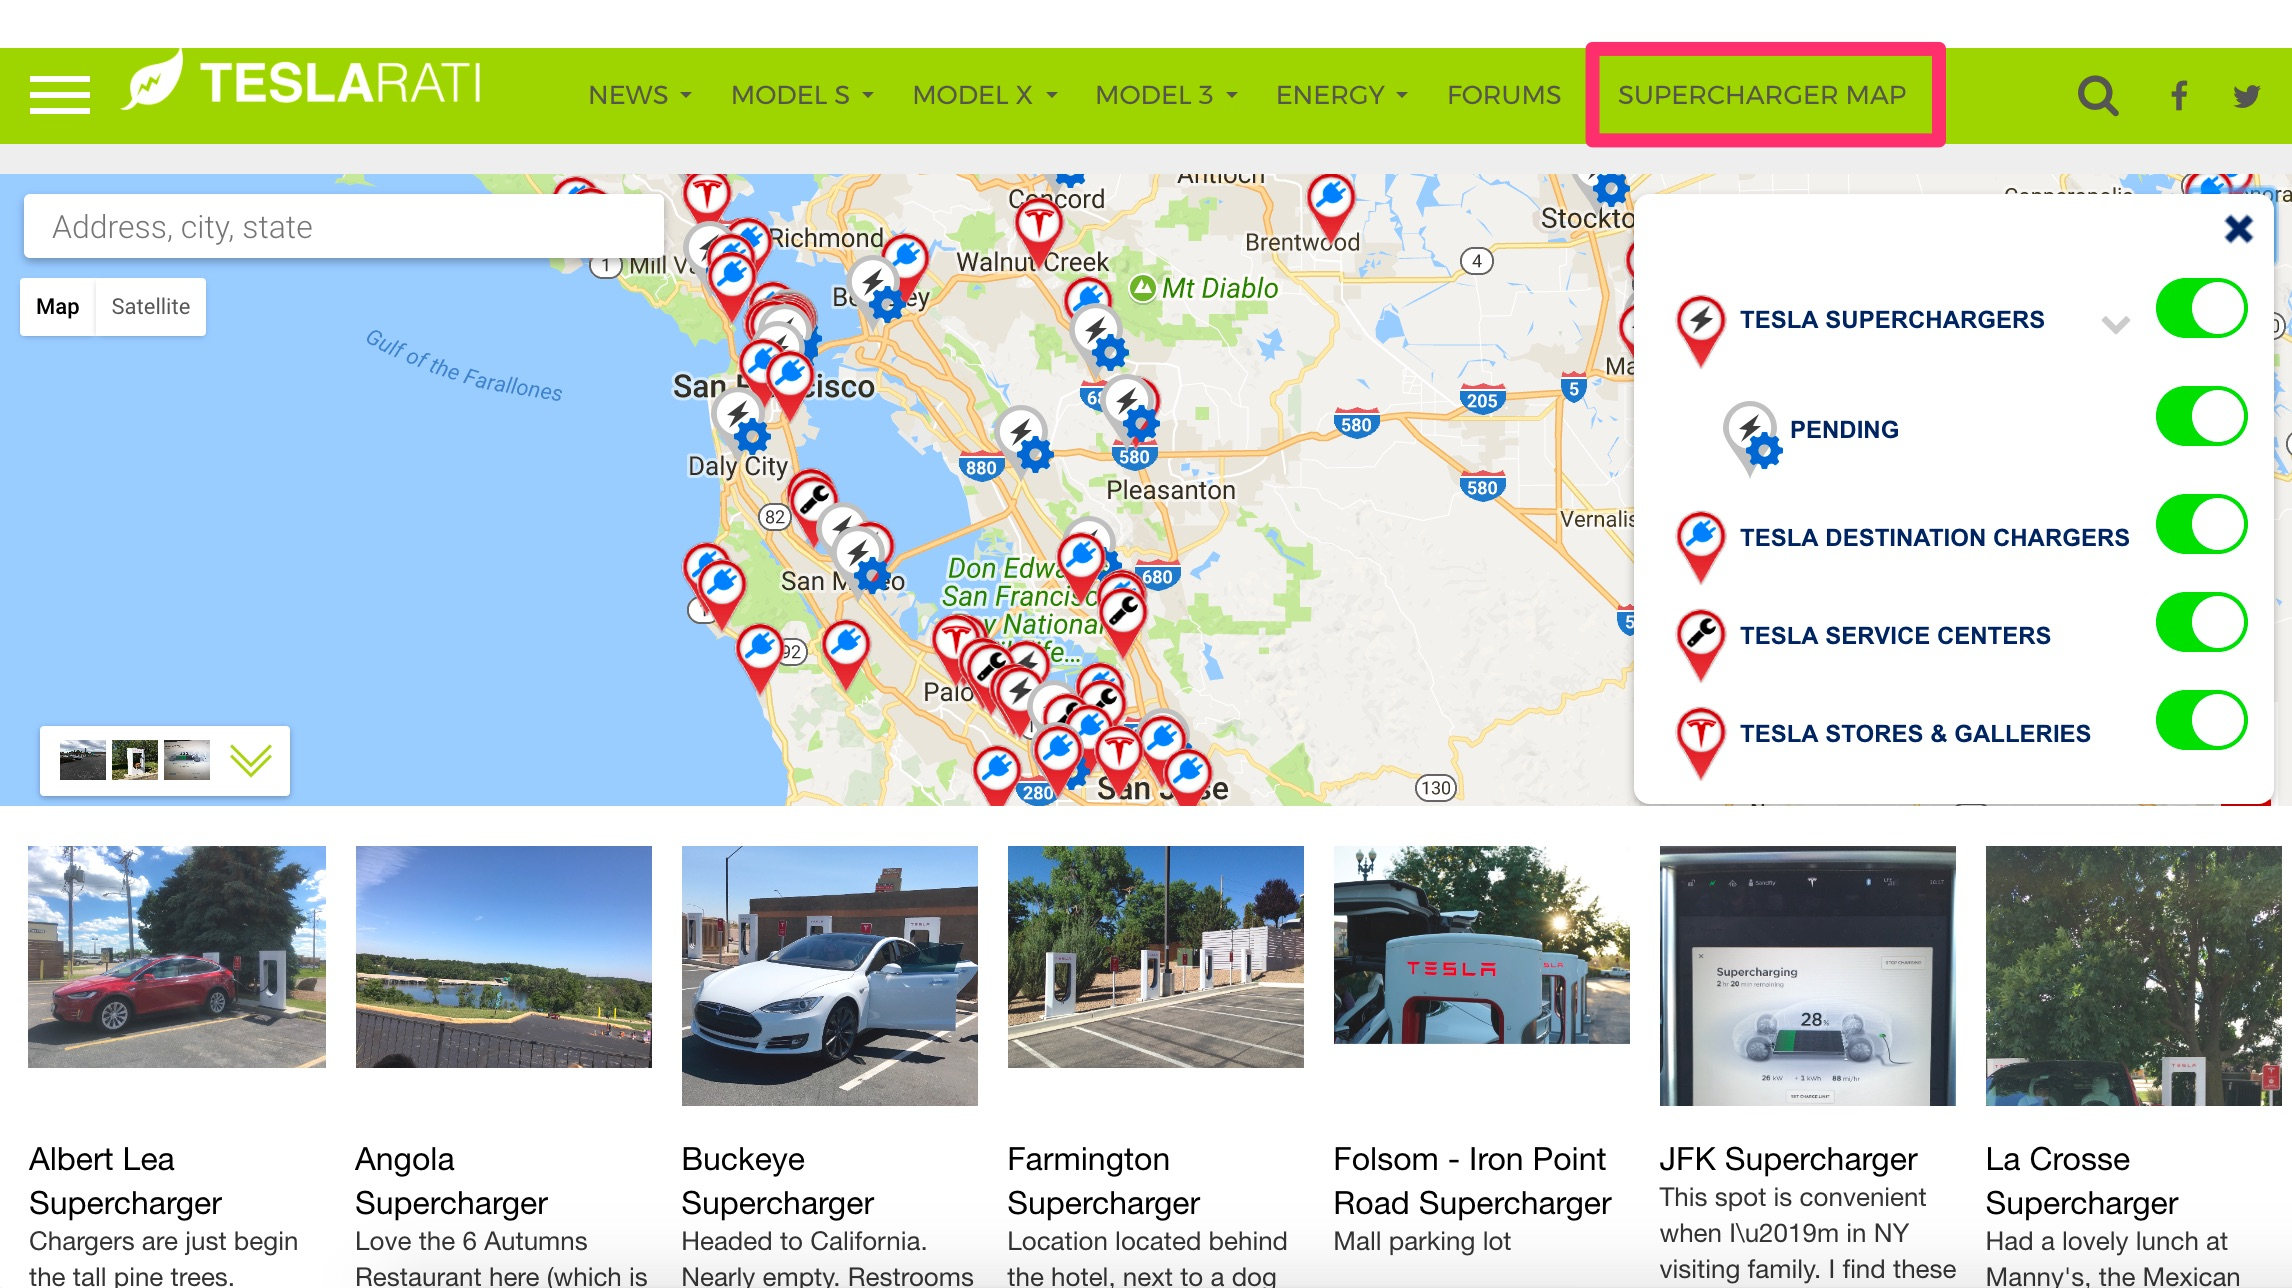 Interactive_Tesla_Supercharger_Map-Teslarati